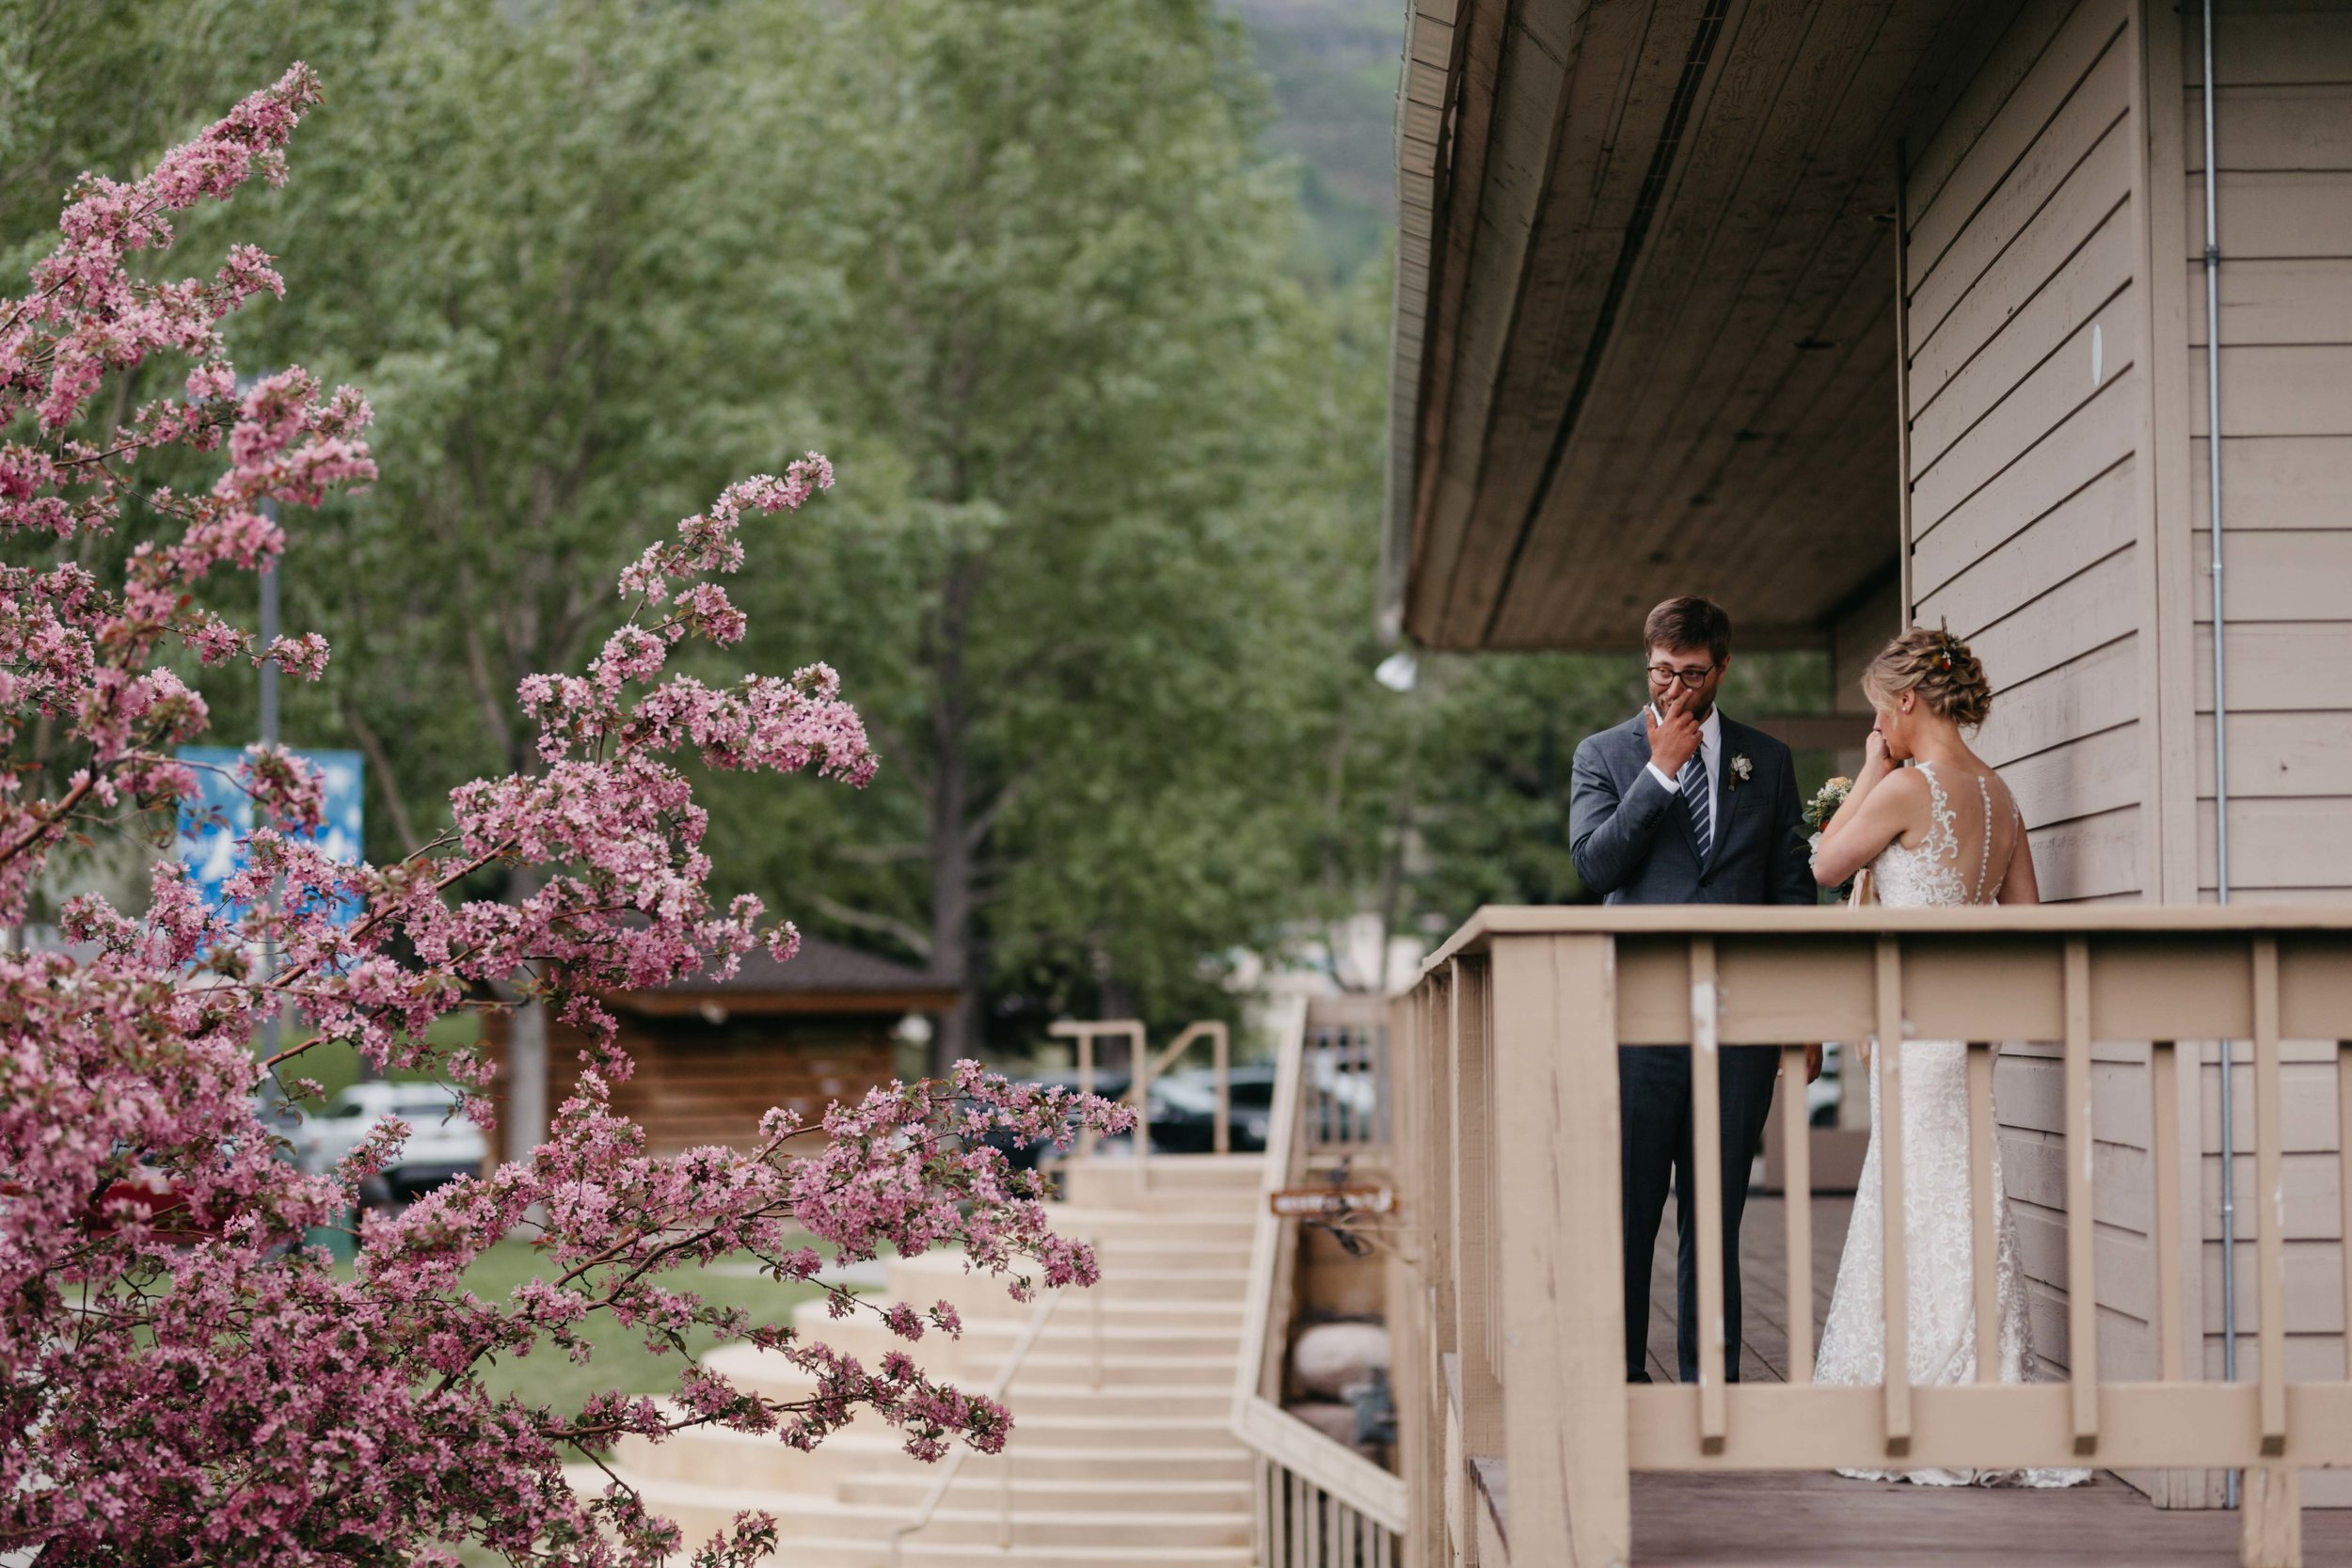 Colorado-Wedding-Photographer-73.jpg